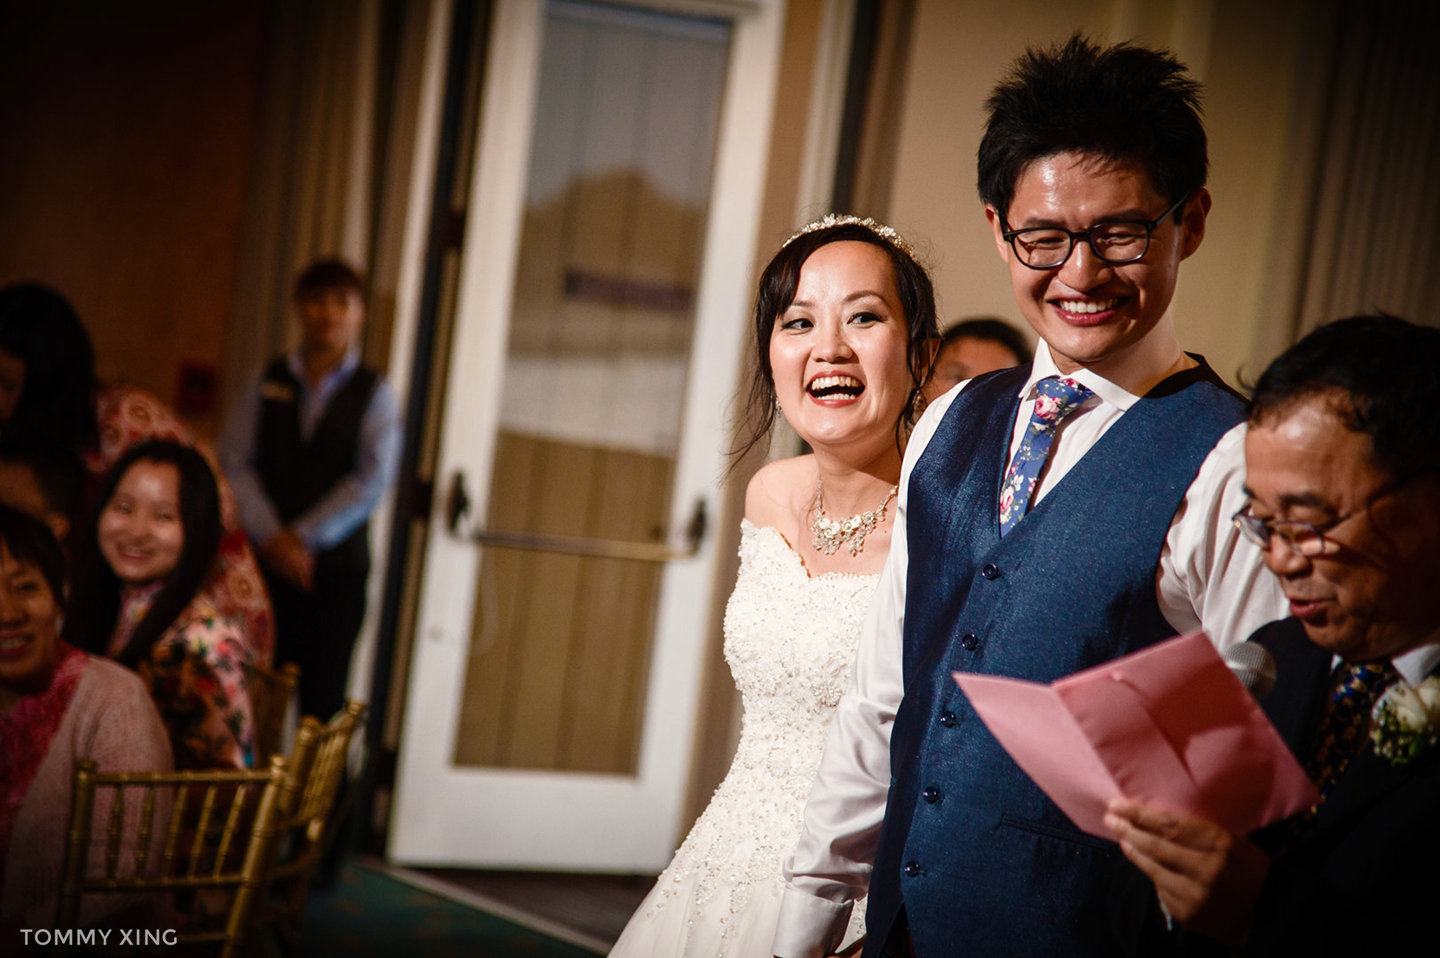 Paradise Point Resort Wedding Xiaolu & Bin San Diego 圣地亚哥婚礼摄影跟拍 Tommy Xing Photography 洛杉矶婚礼婚纱照摄影师 252.jpg